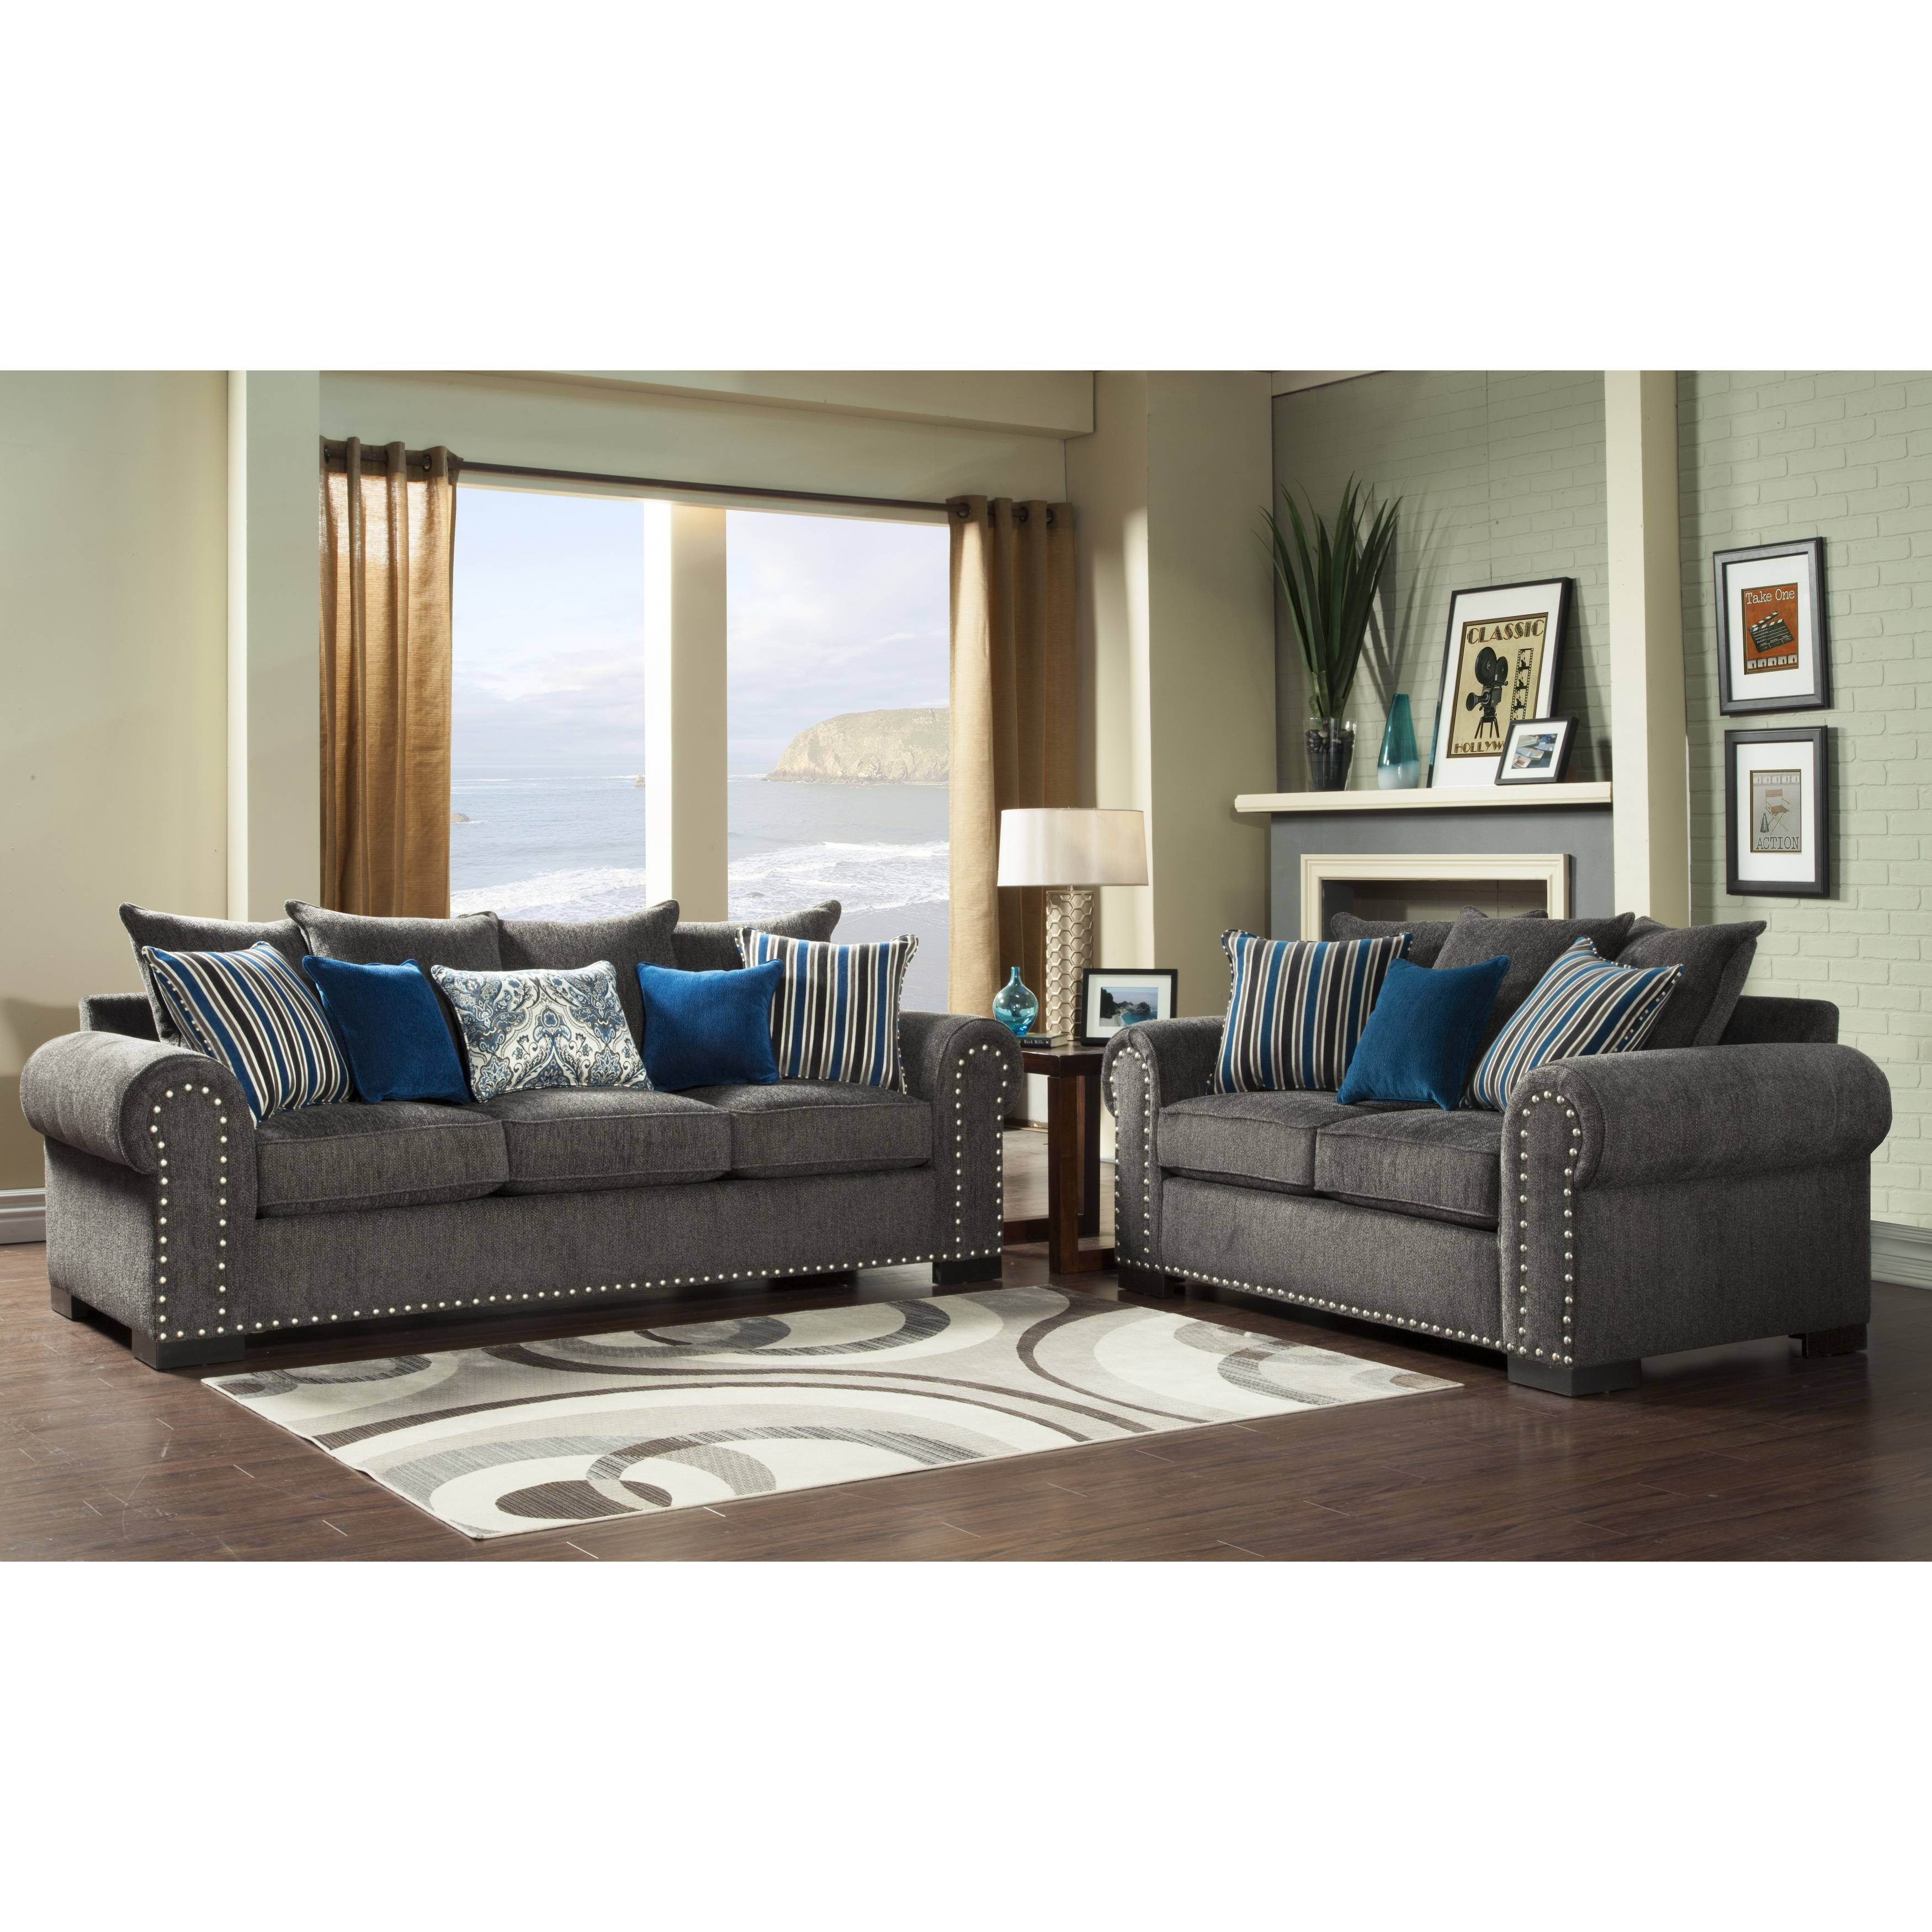 Accent Pillows For Gray Sofa | Pillow Decoration in Blue Gray Sofas (Image 1 of 15)